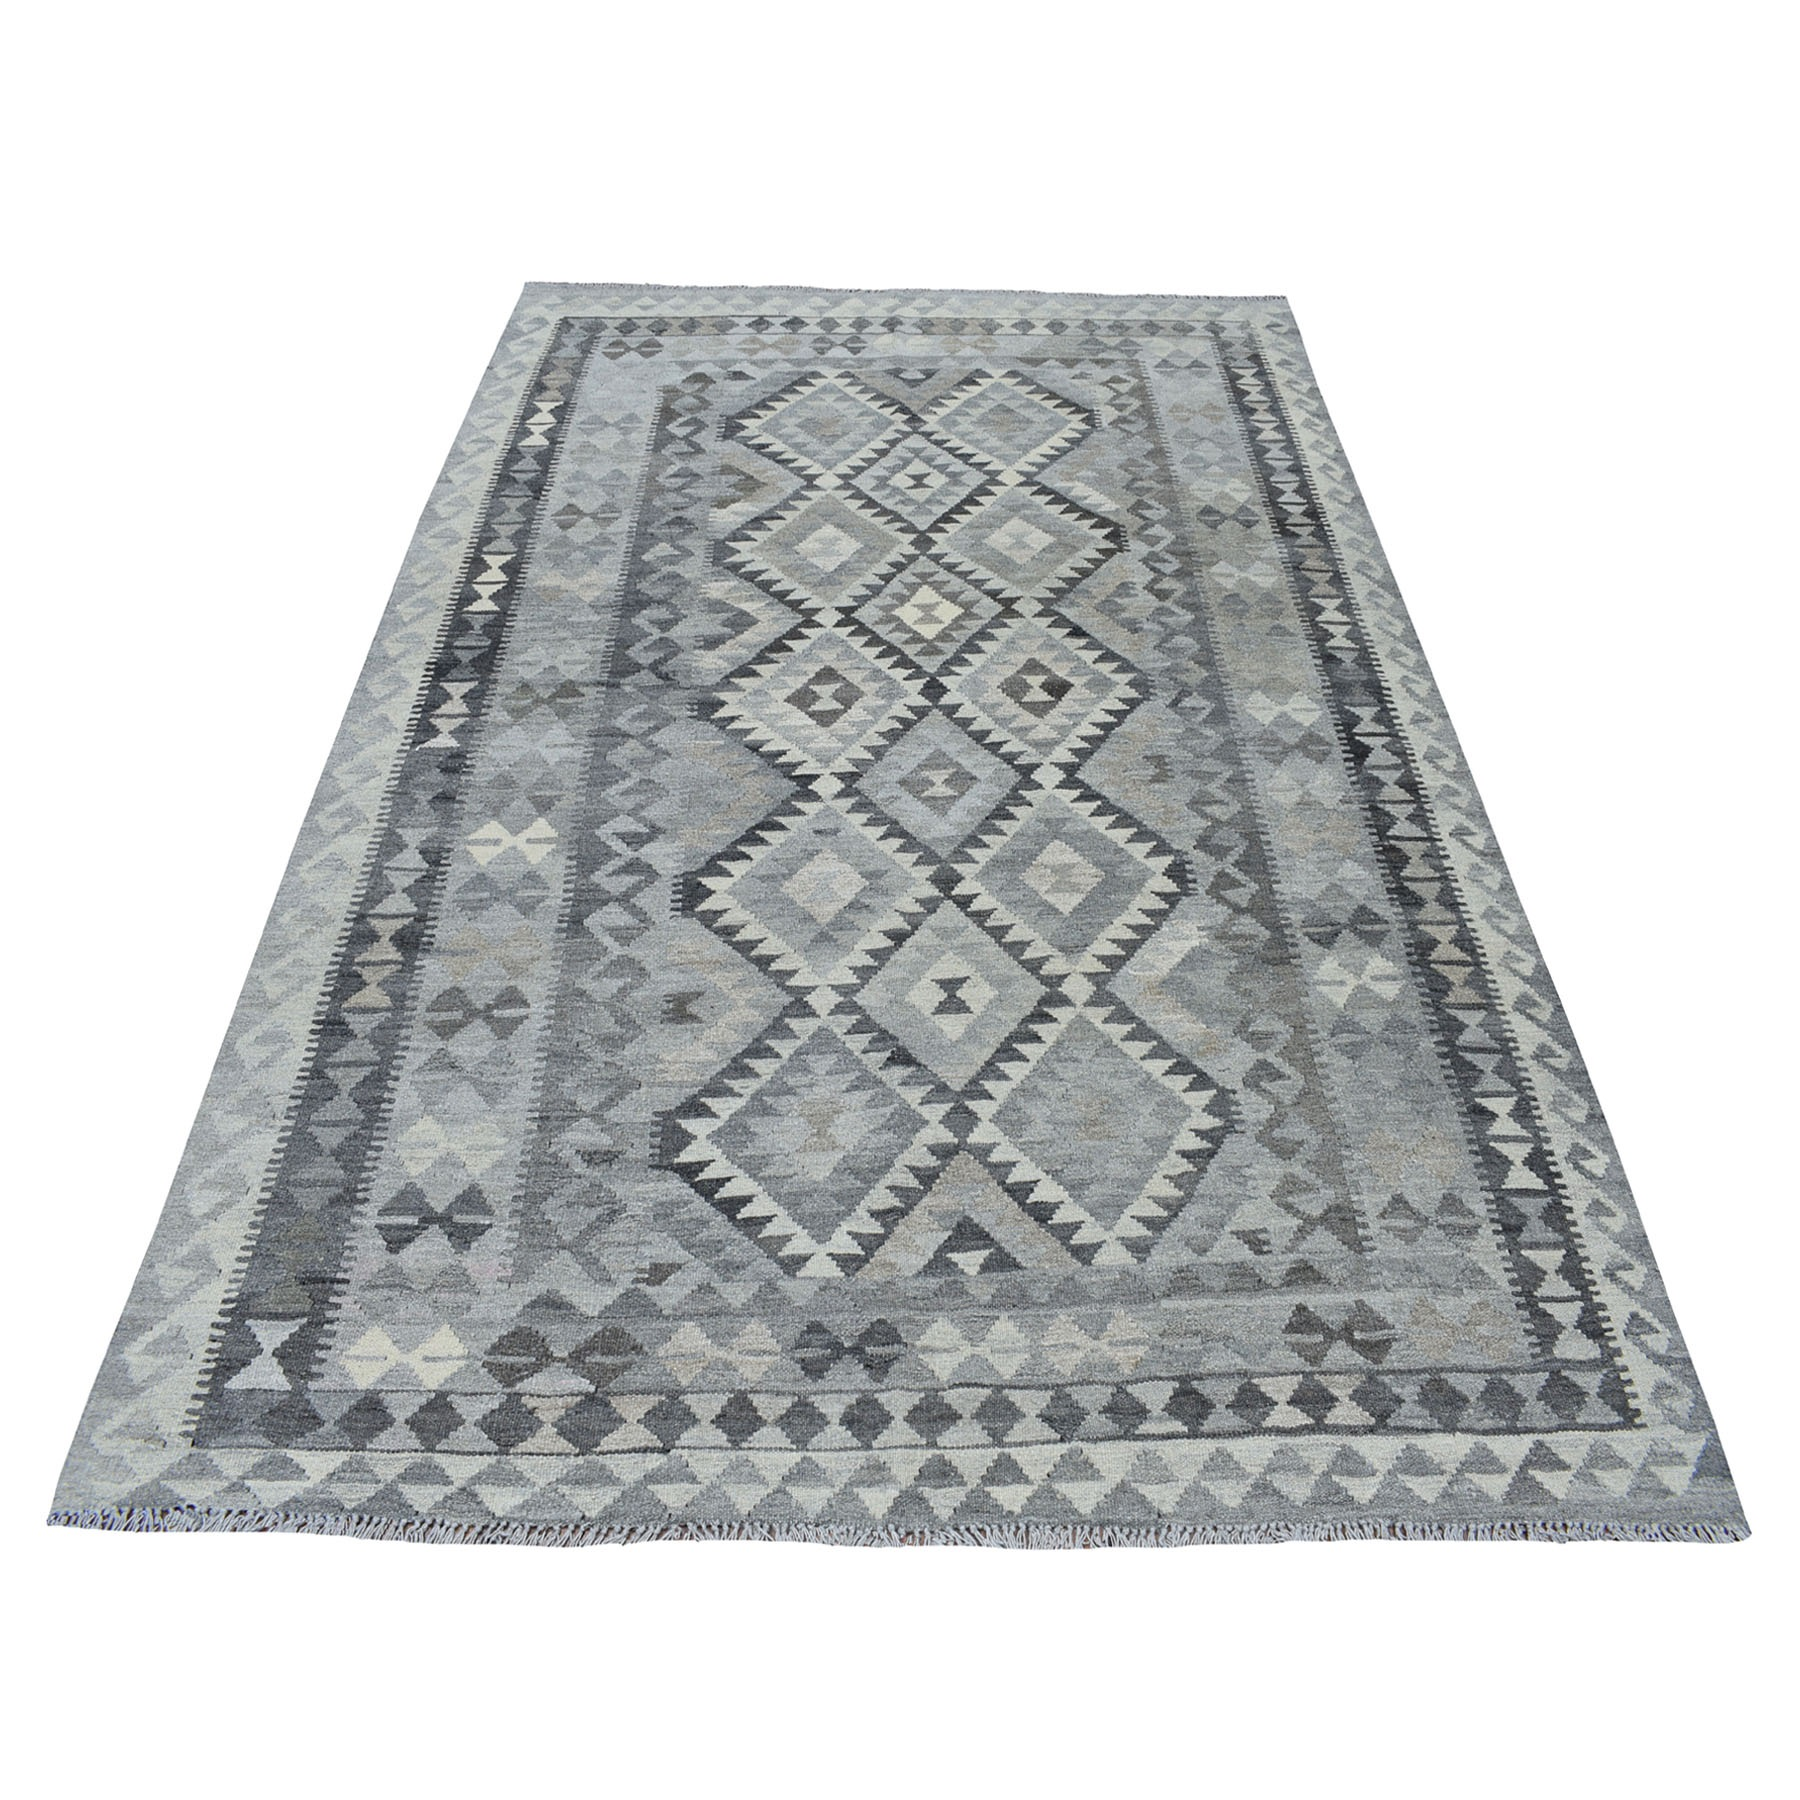 "5'9""X8'1"" Undyed Natural Wool Afghan Kilim Reversible Hand Woven Oriental Rug moaec0be"